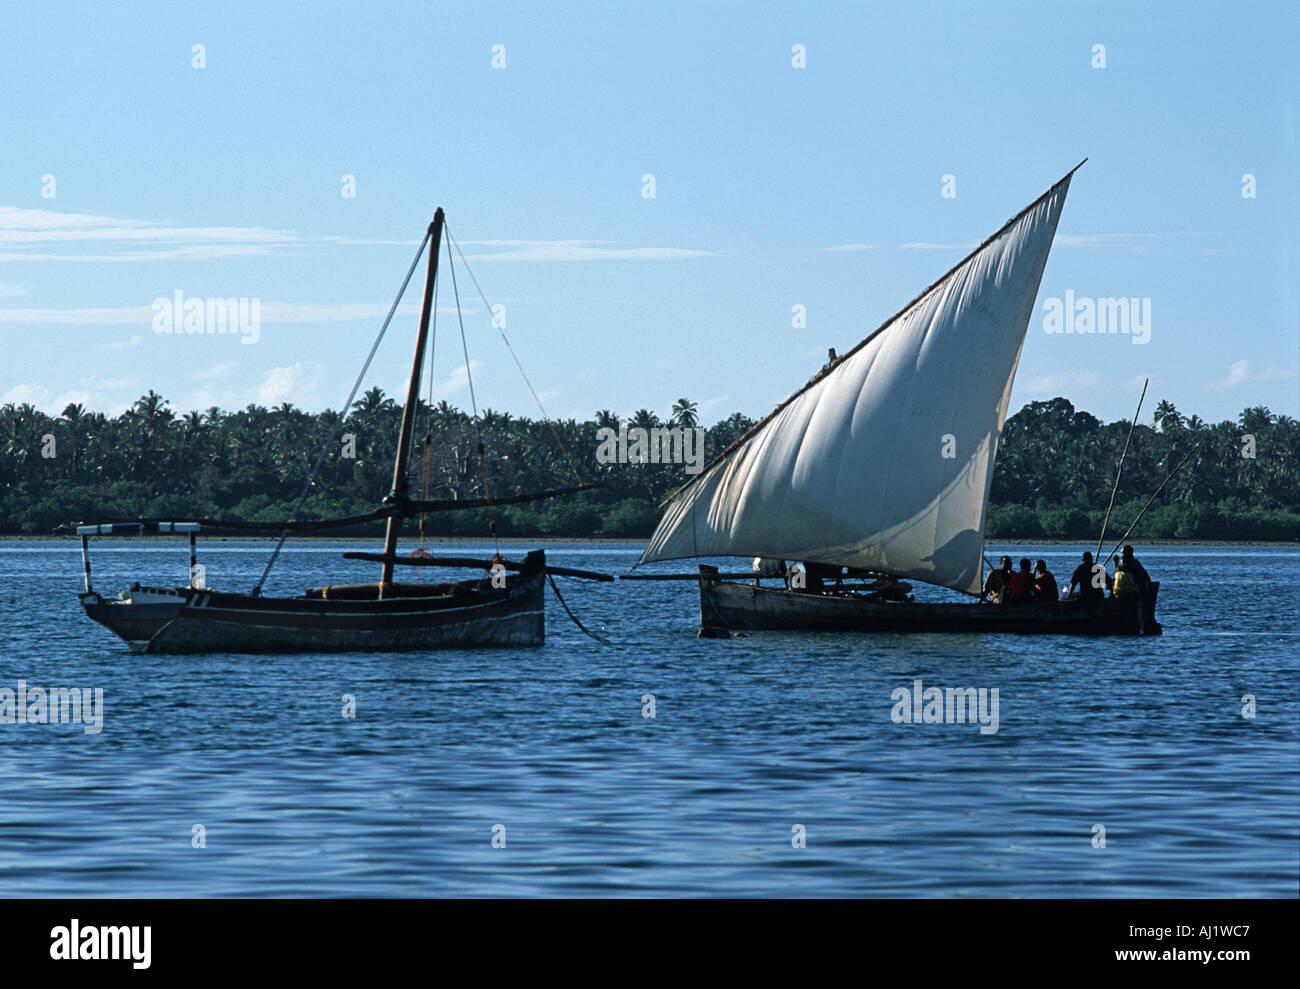 Dhow operating as a local ferry transporting people and produce between Mafia island and Chole island s of Zanzibar Tanzania - Stock Image